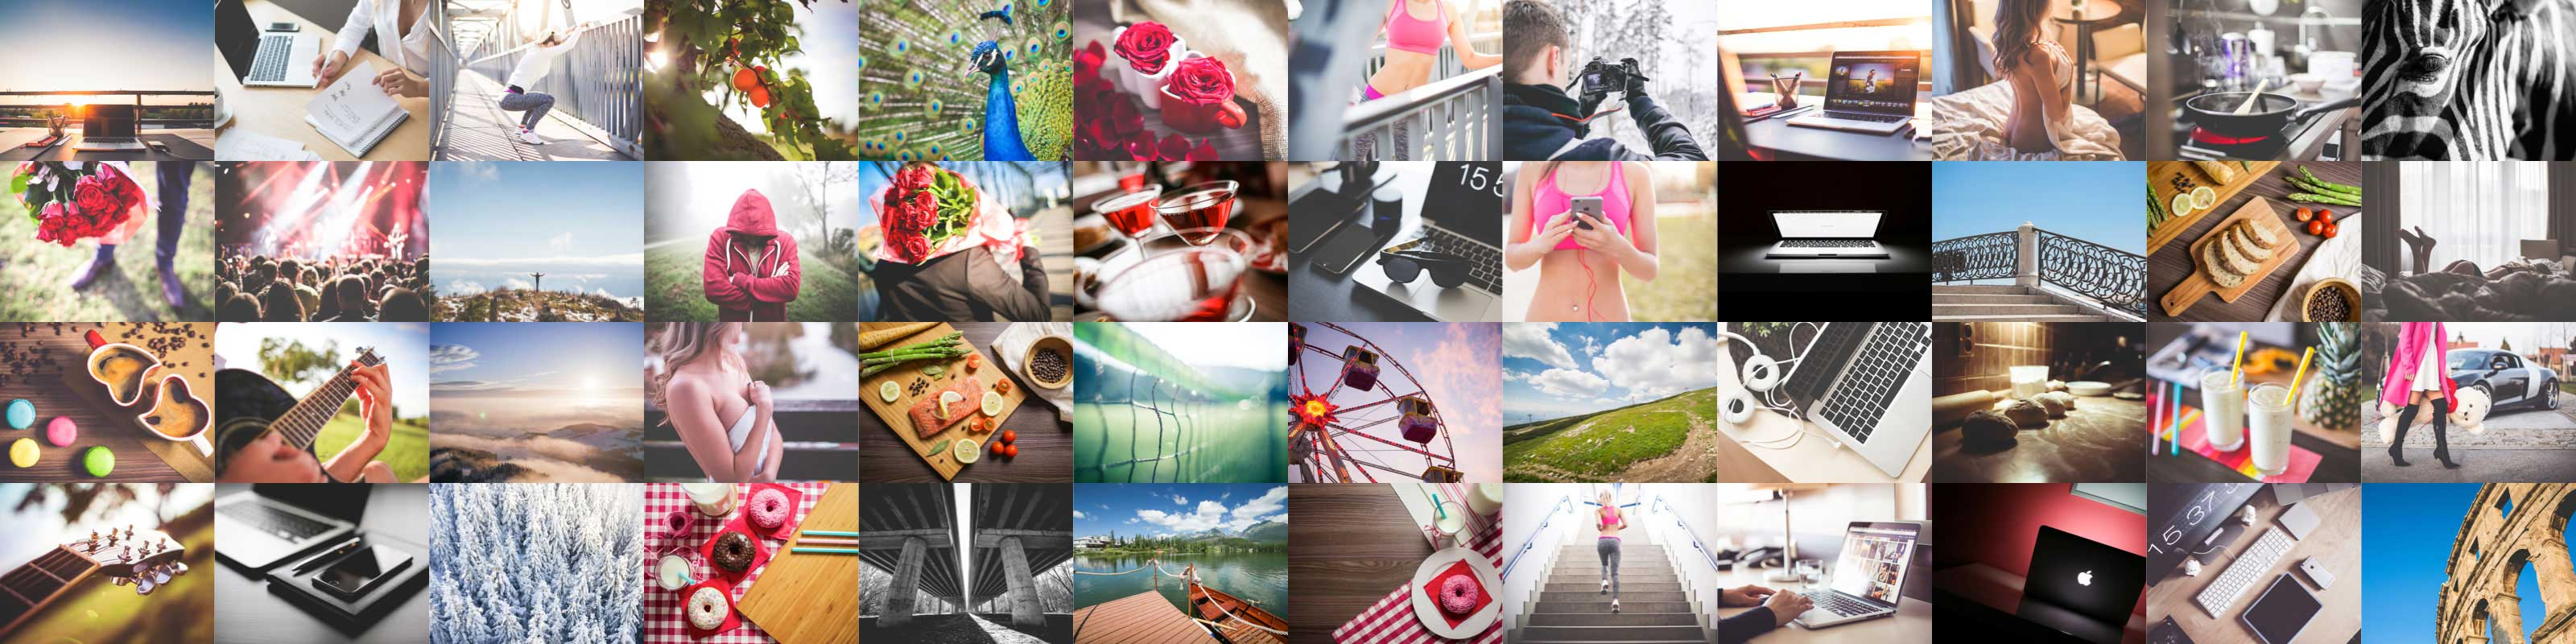 All these photos are waiting on you in picjumbo PREMIUM Membership!